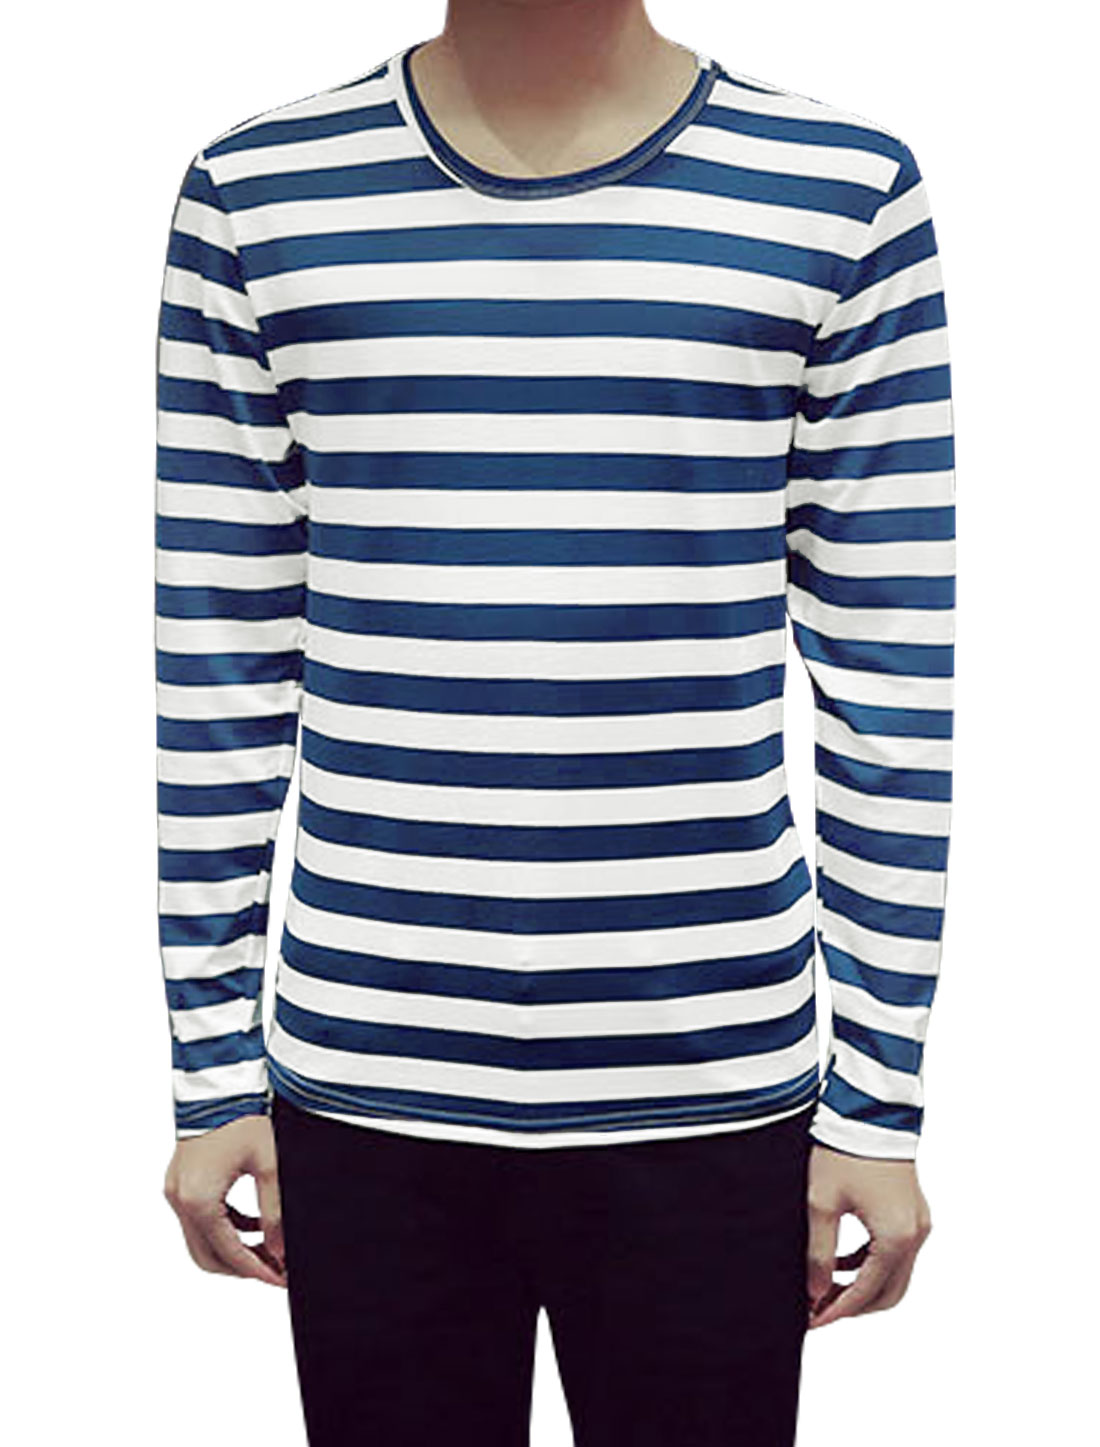 Men Long Sleeves Round Neck Stripes Slim Fit Tee Shirt Blue L